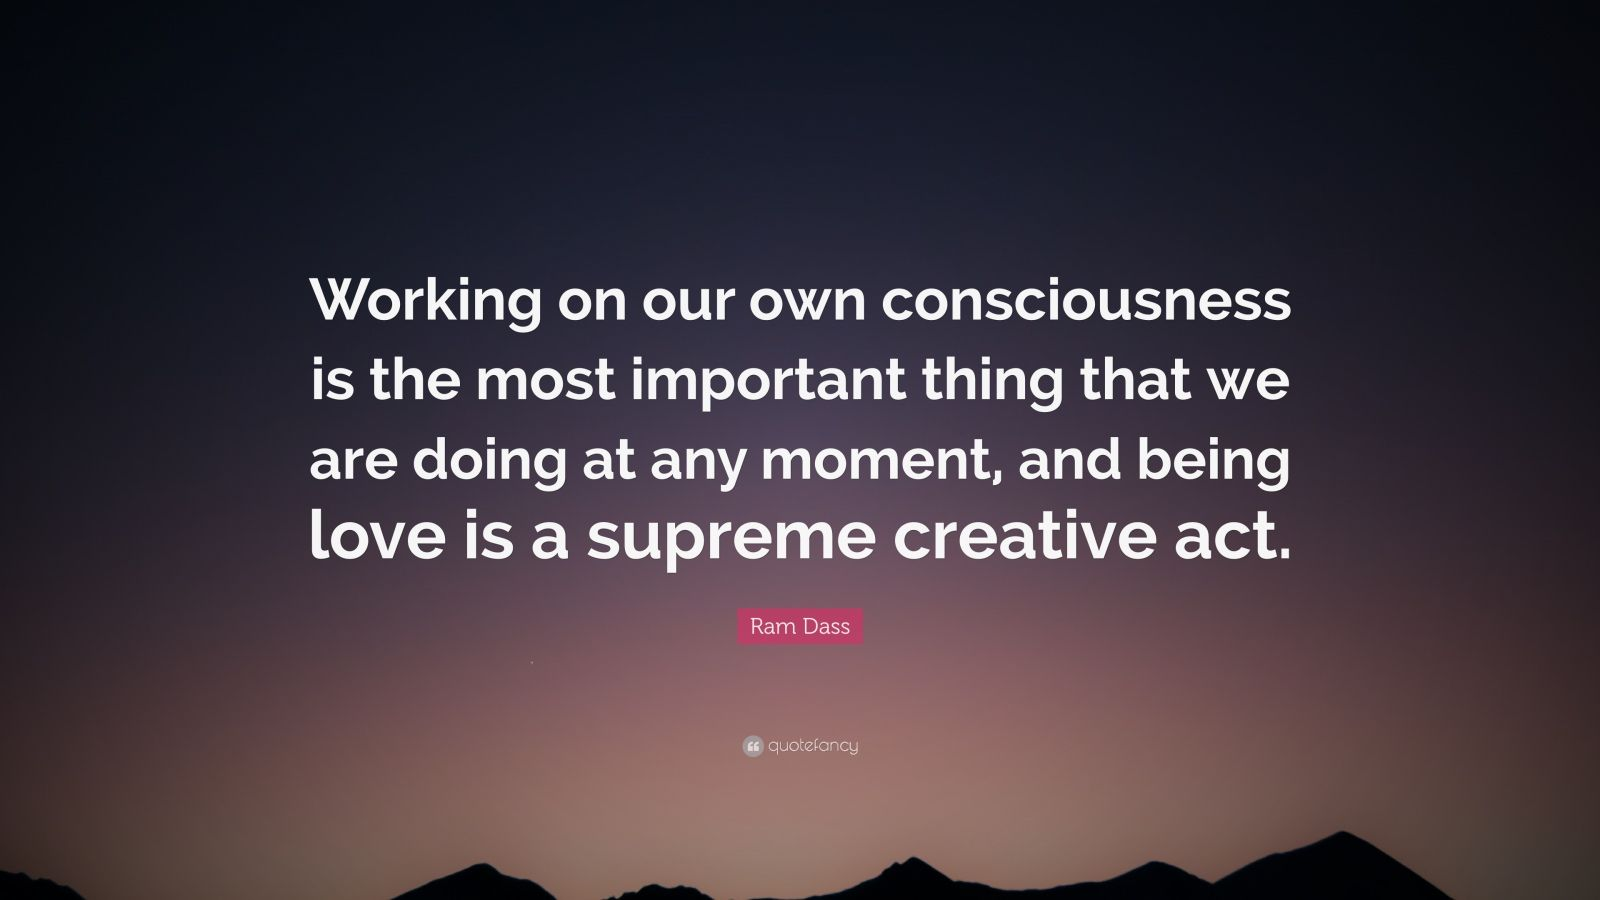 """Ram Dass Quote: """"Working on our own consciousness is the most important thing that we are doing at any moment, and being love is a supreme creative act."""""""